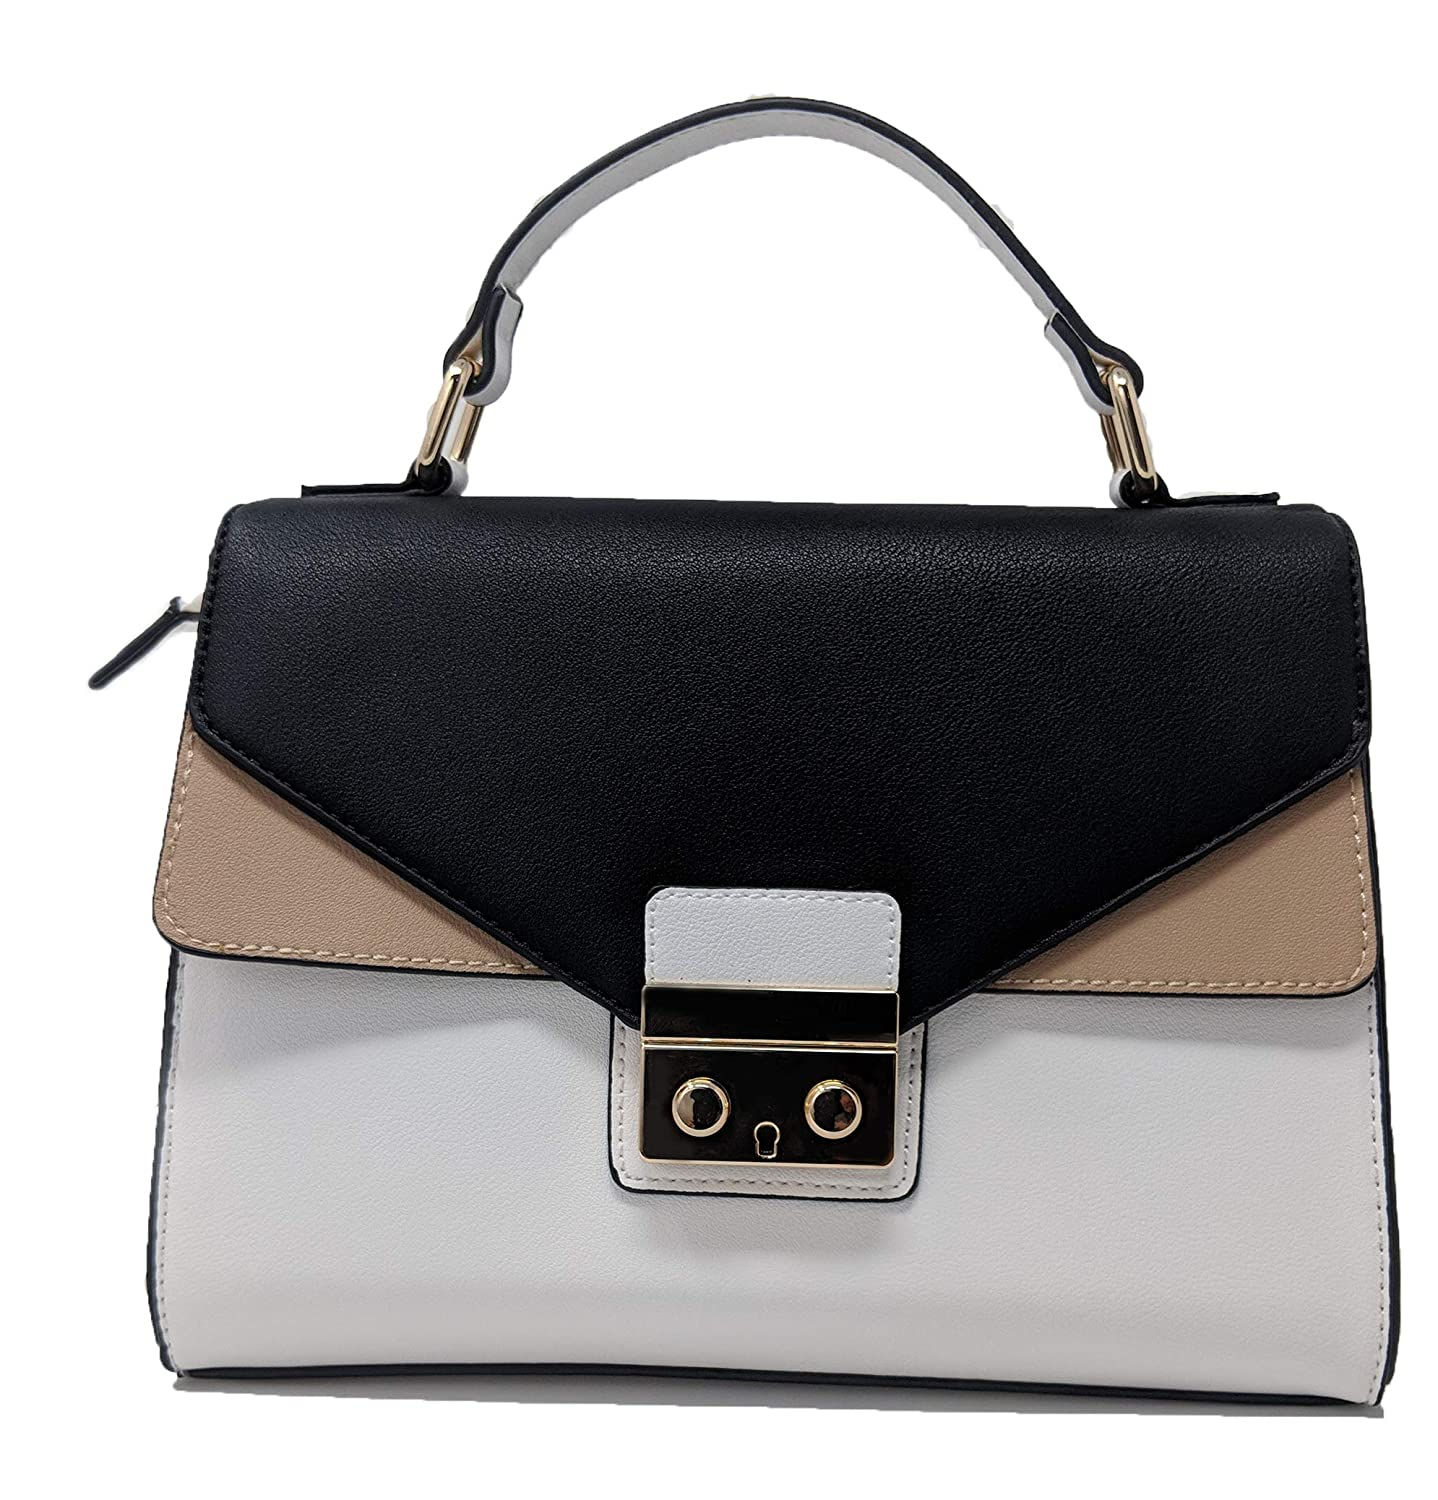 Image result for A structured colorblock purse